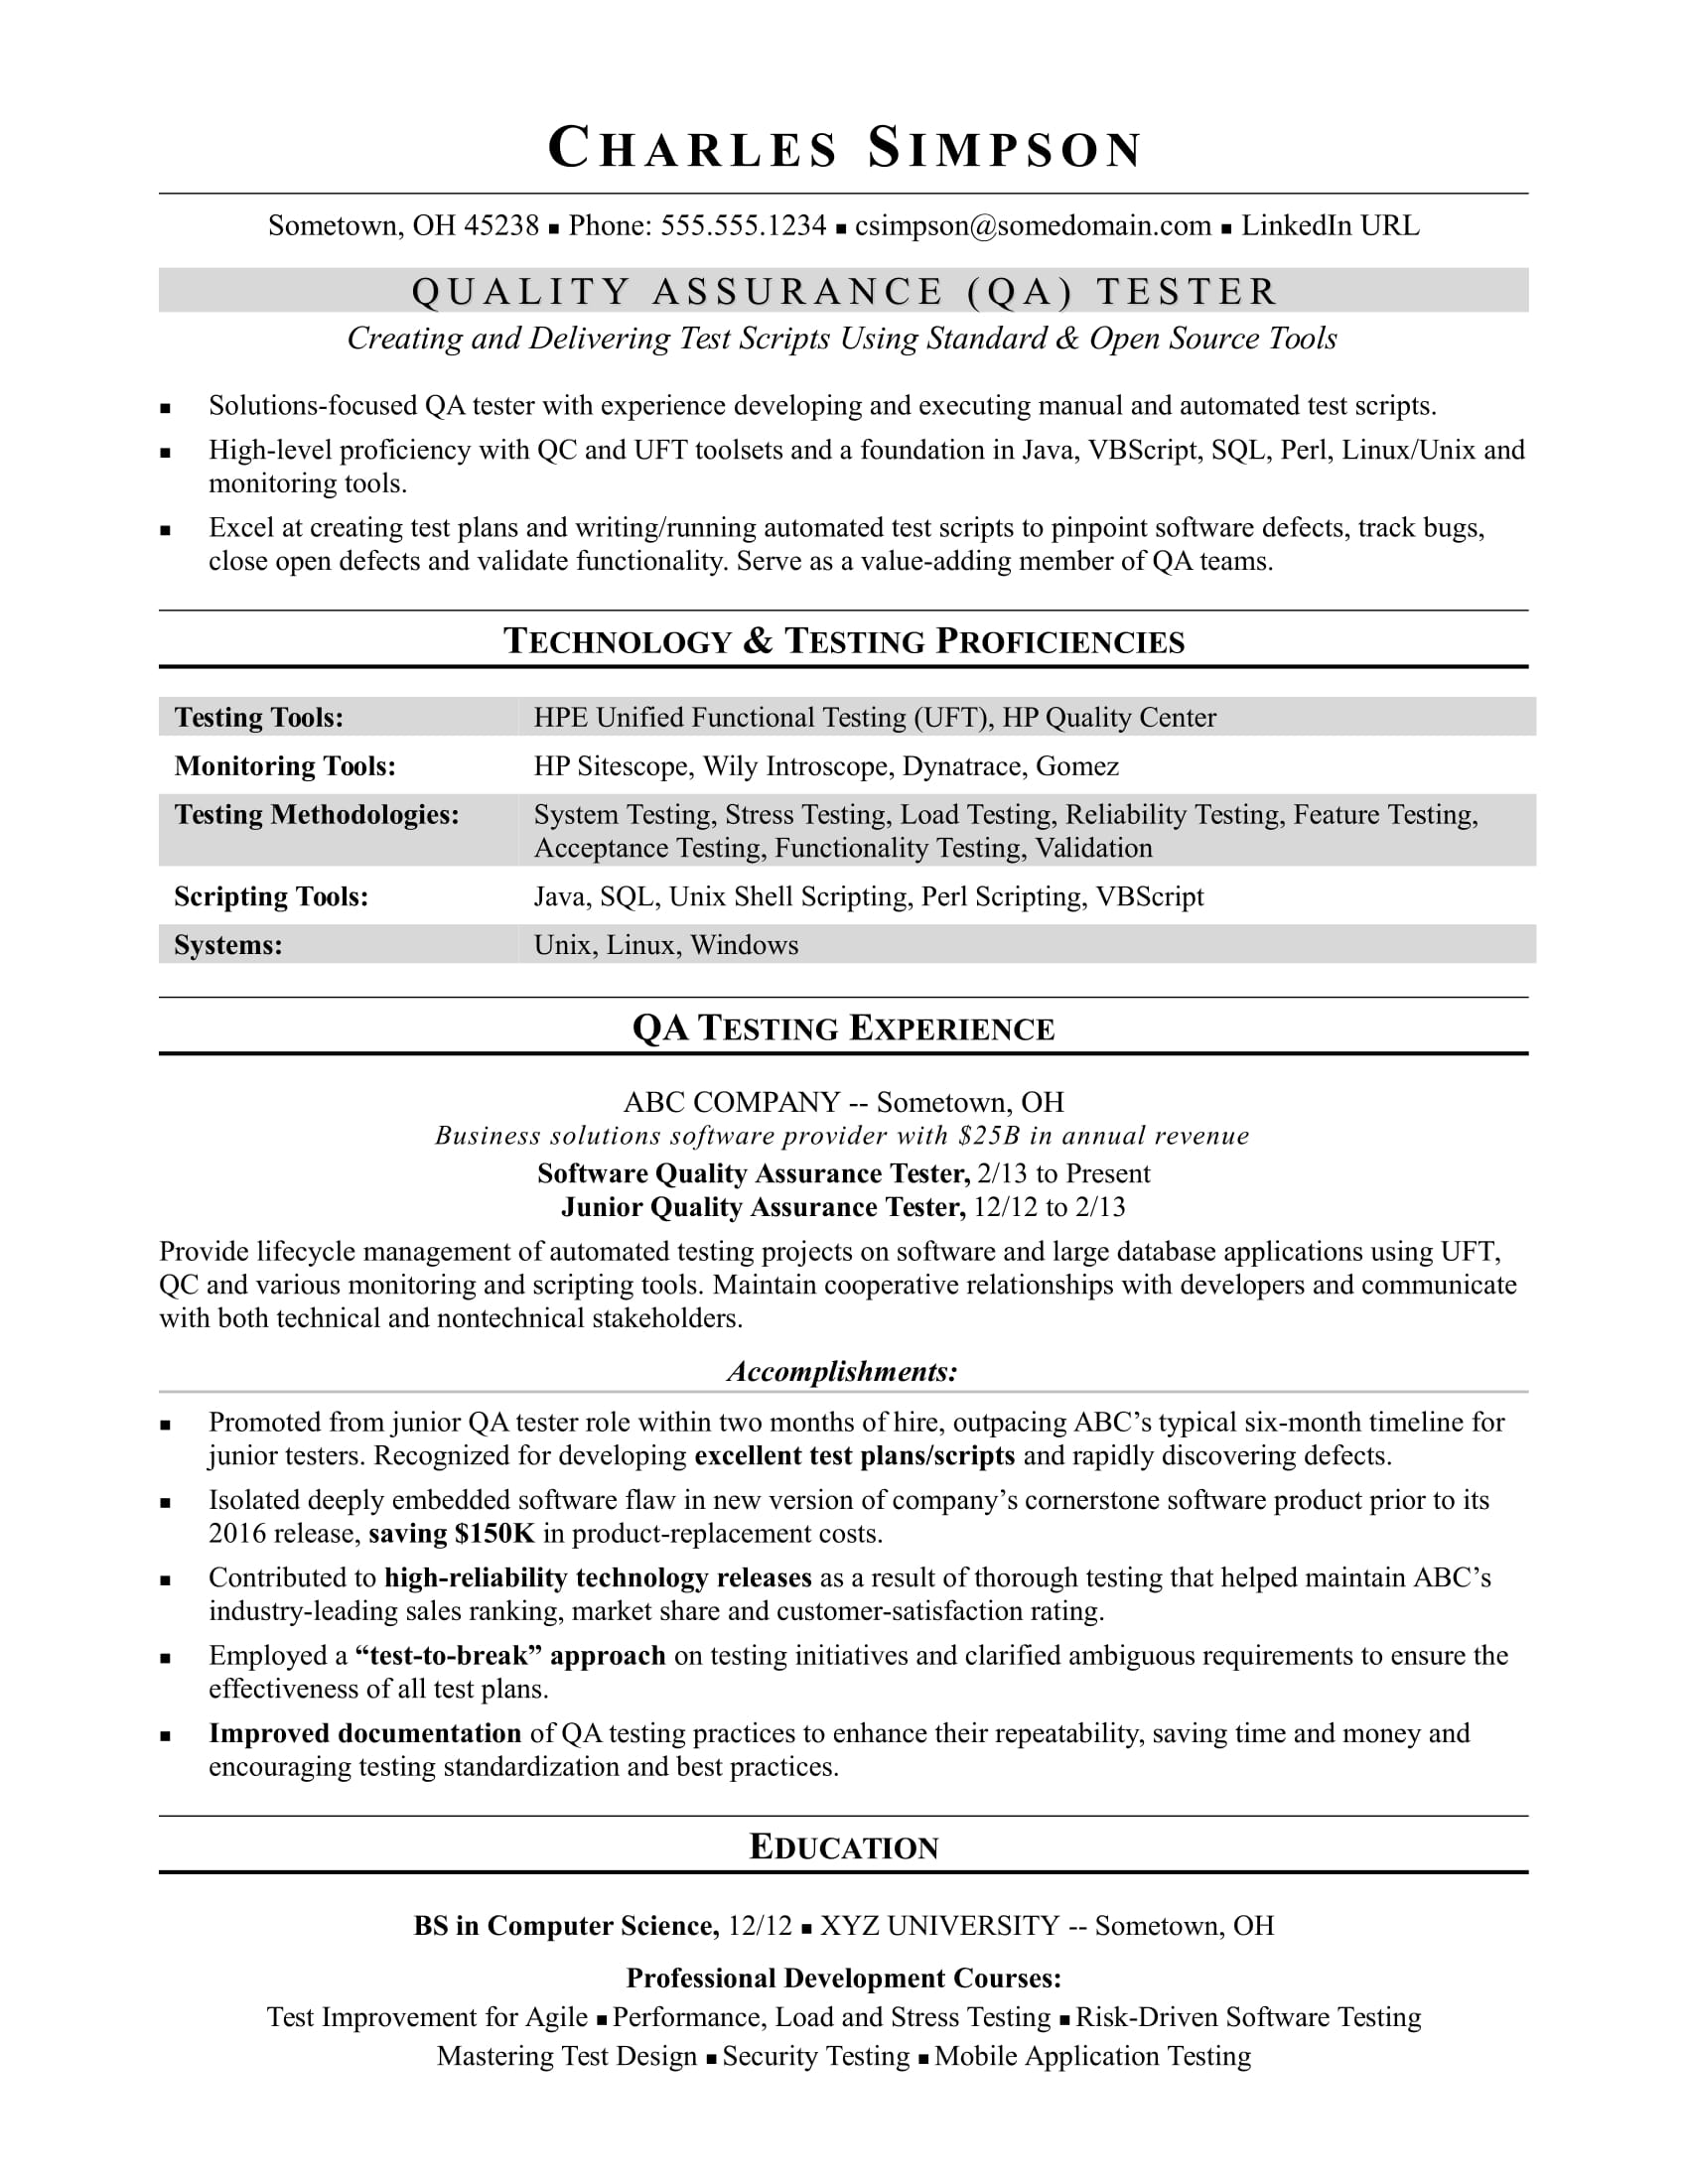 Sample Resume For A Midlevel QA Software Tester  Software Quality Assurance Resume